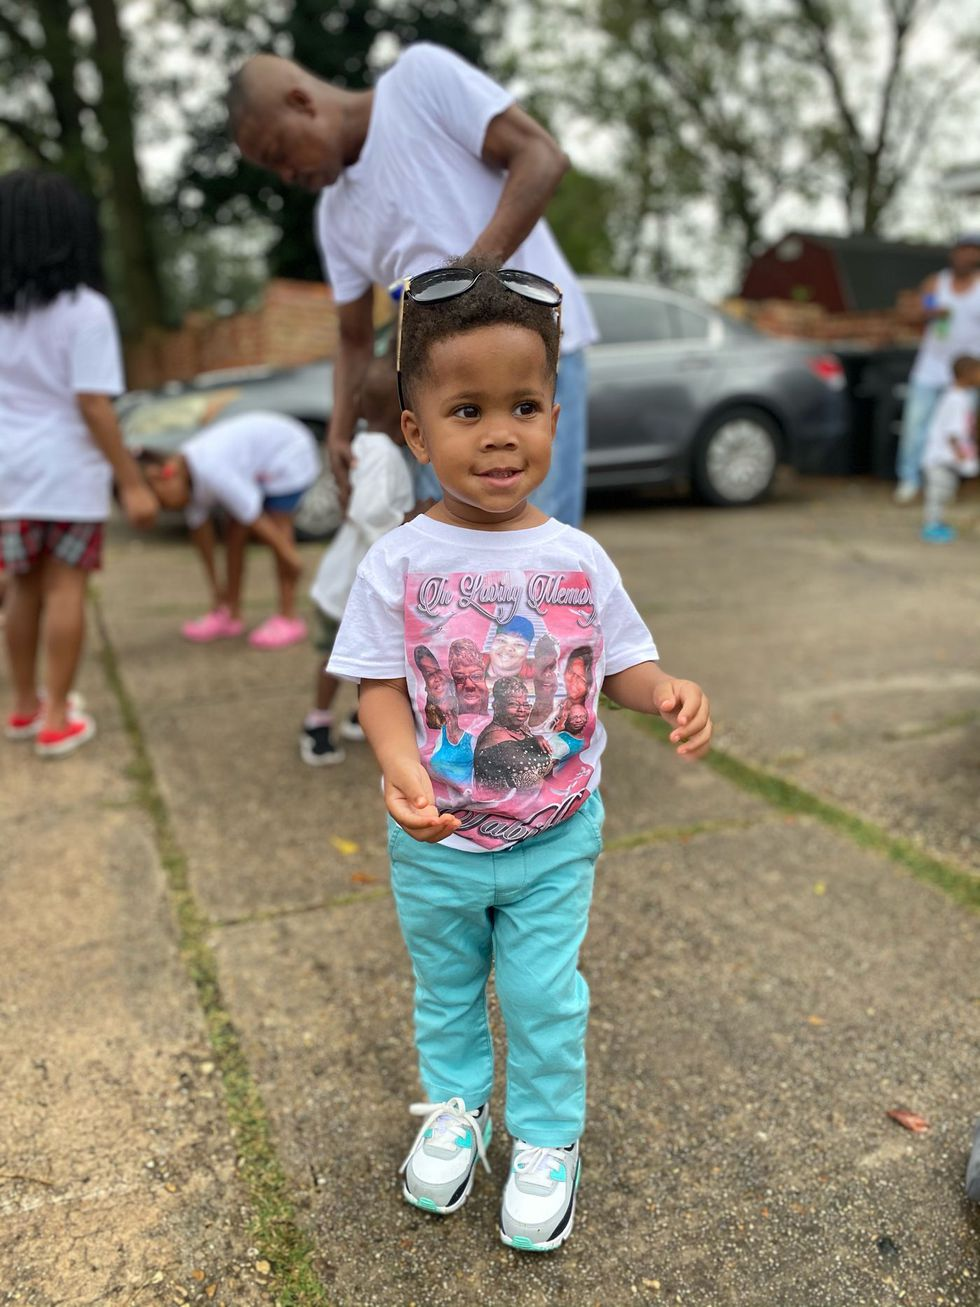 The East Baton Rouge Parish Coroner's Office identified the toddler as Azariah Thomas.